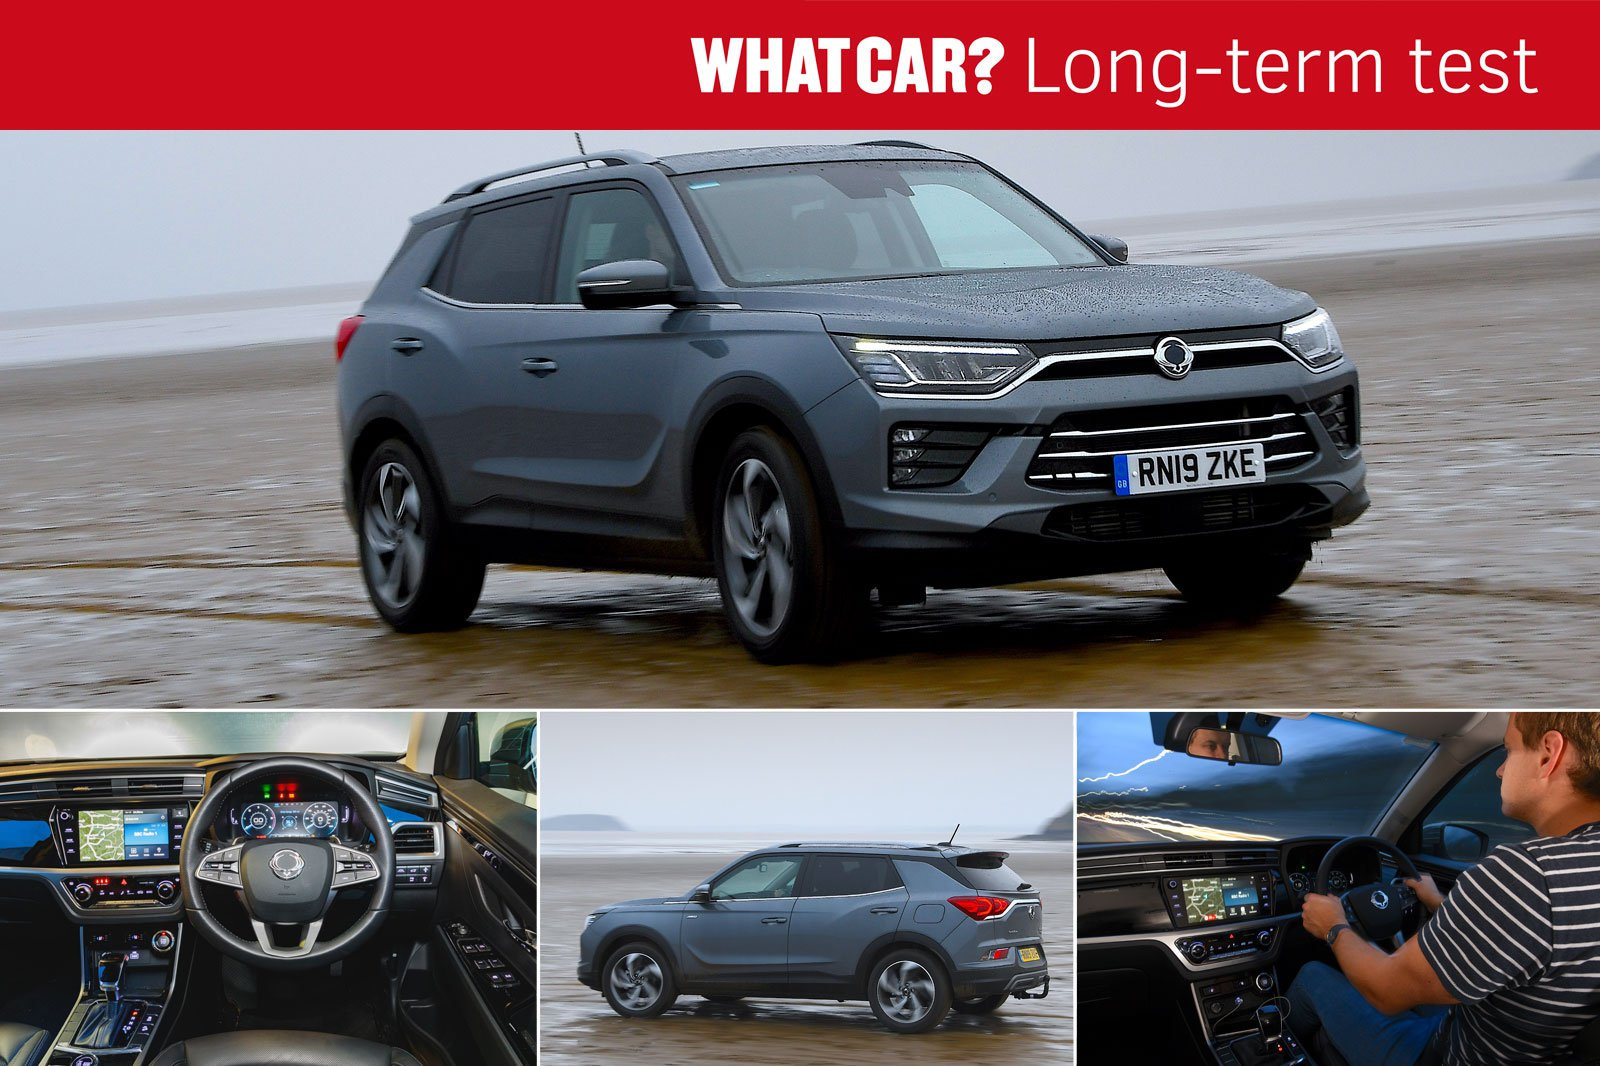 Ssangyong Korando long-term test